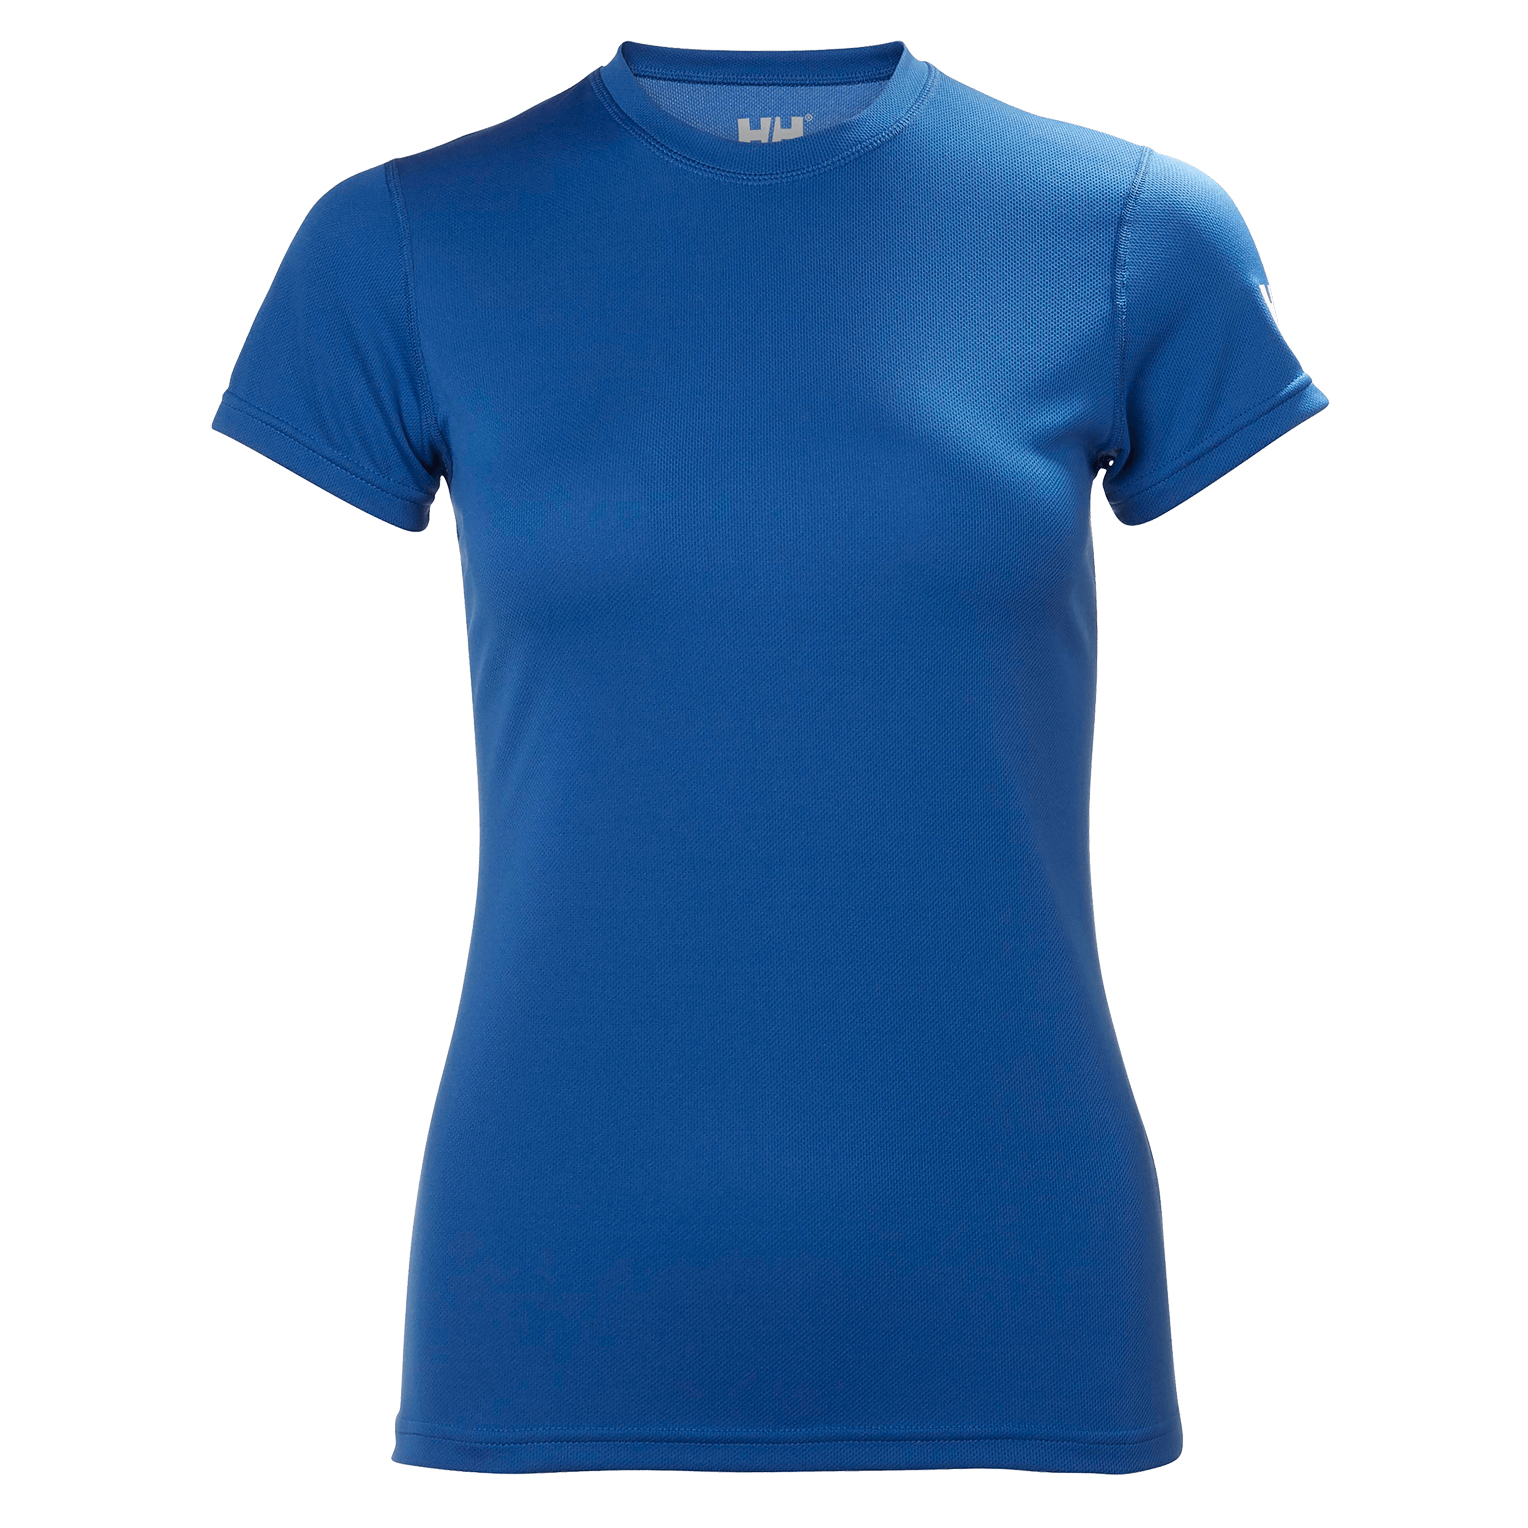 Helly Hansen Women's HH Tech T-Shirt (48373)